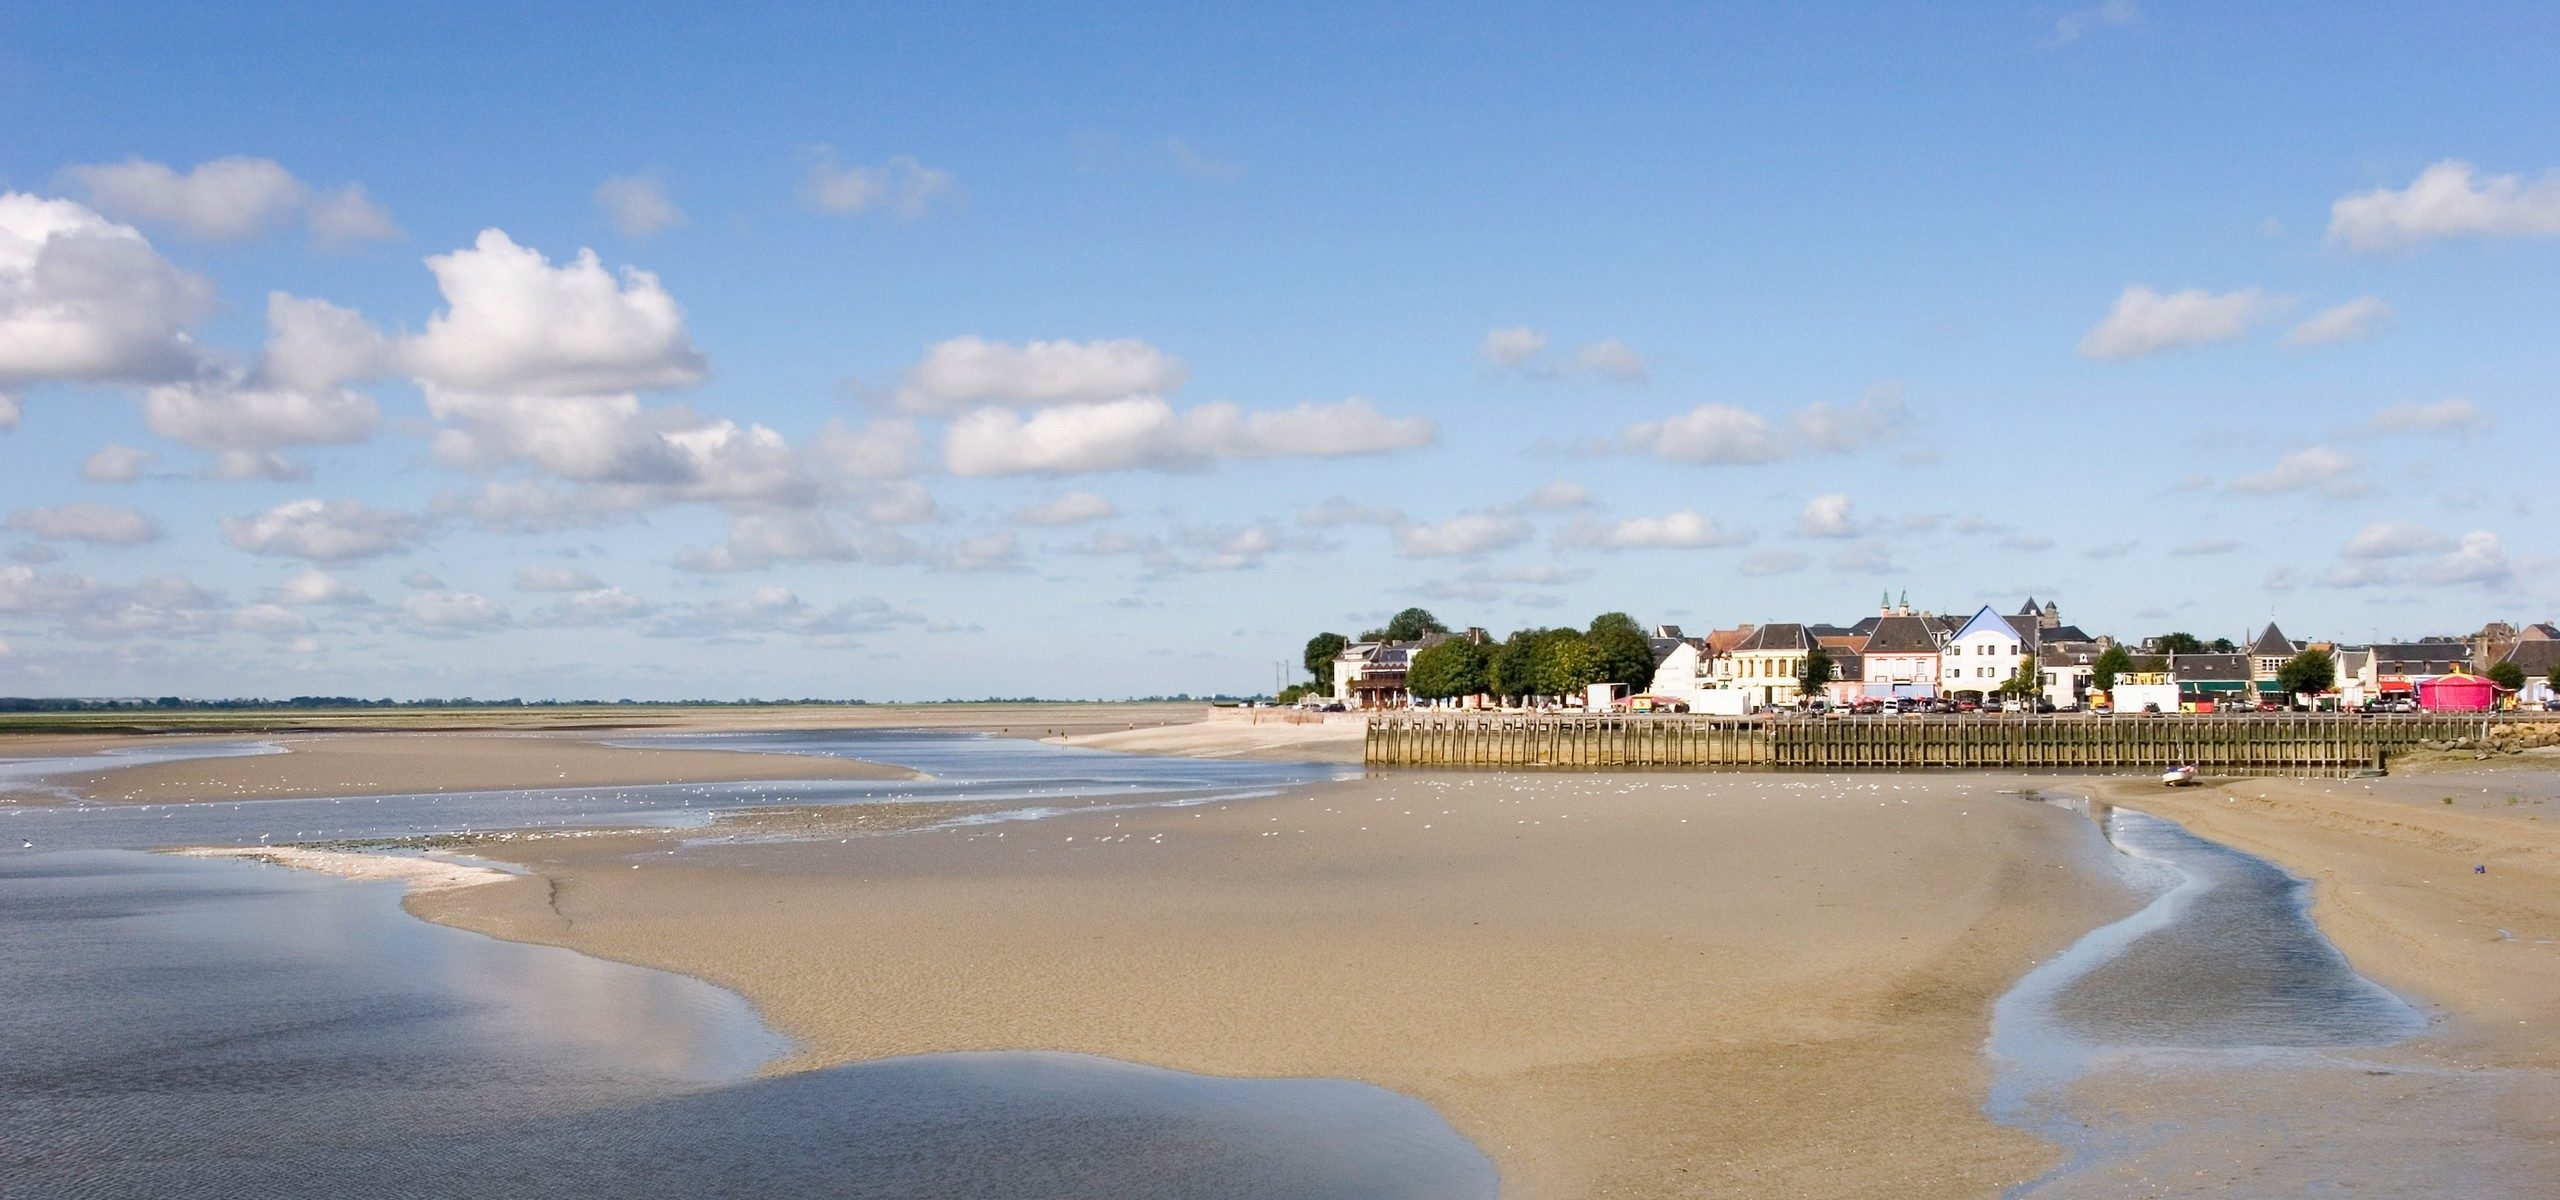 Plage-Le Crotoy-Baiedesomme